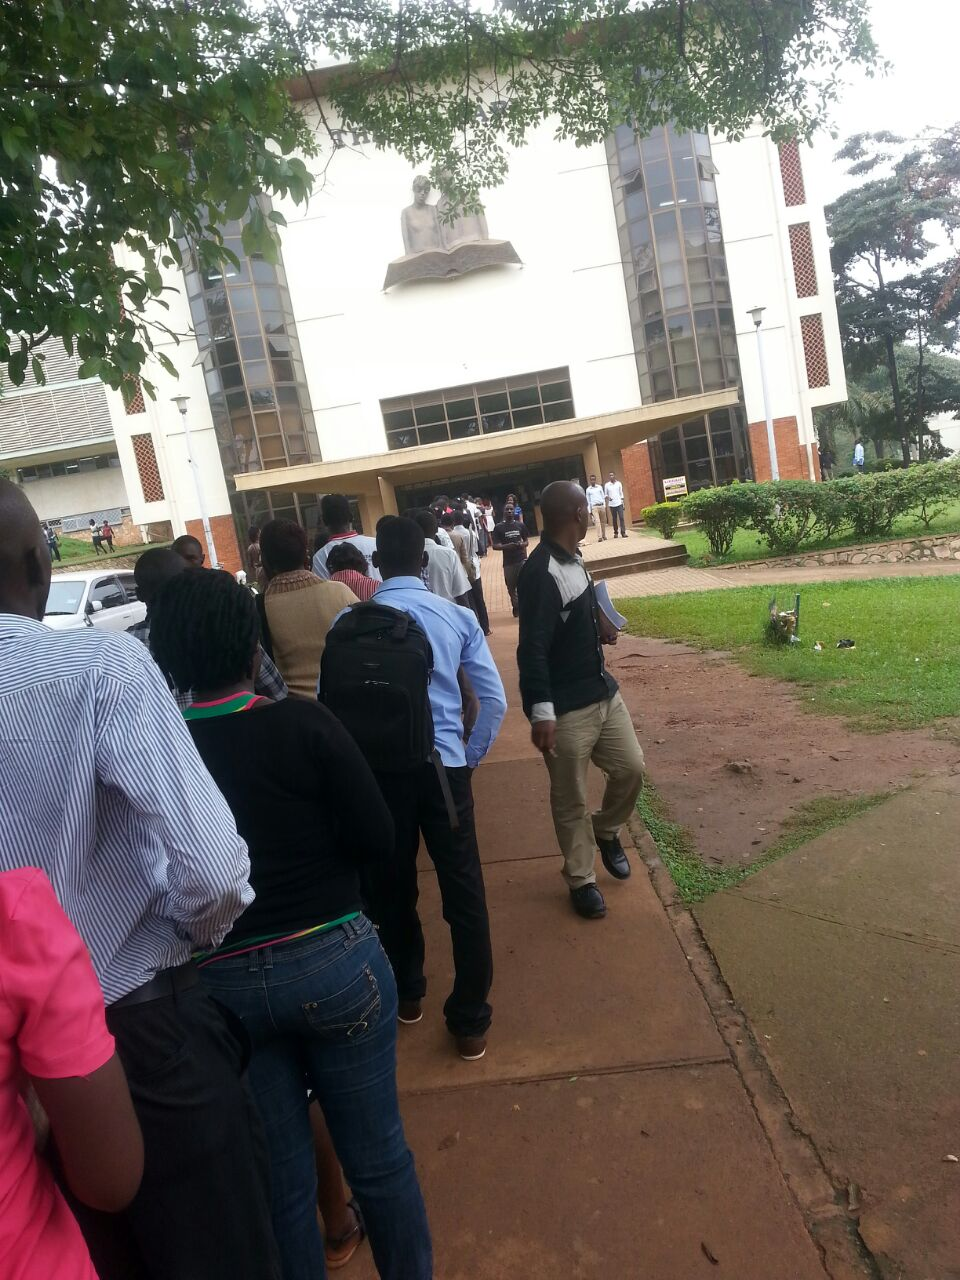 The long queue outside the library